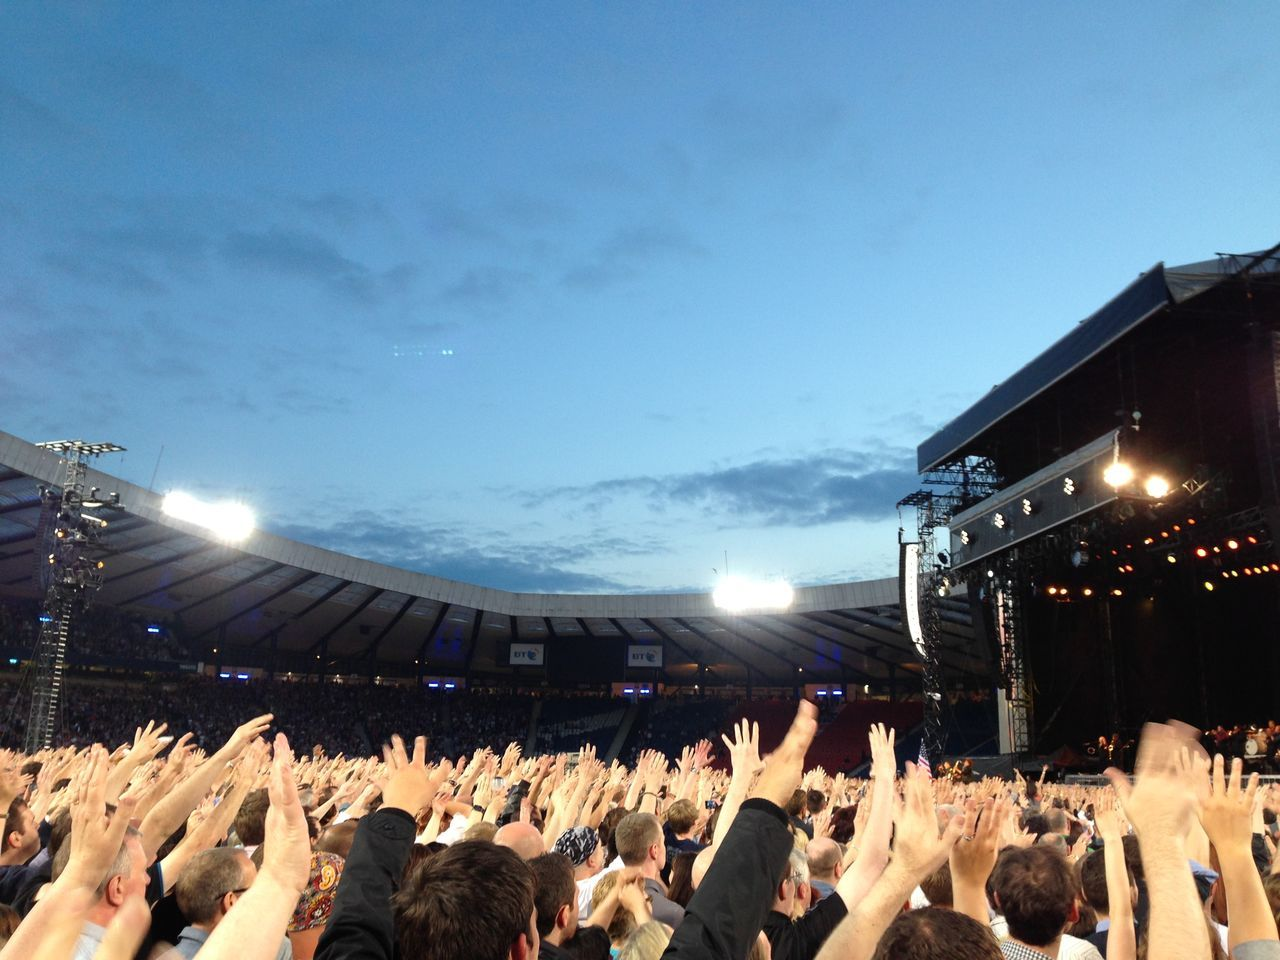 Sound Of Lifeof Music] Thunder Road Bruce Bruce Life Bruce Springsteen Estreetband Worshipmusic best gig ever! The boss